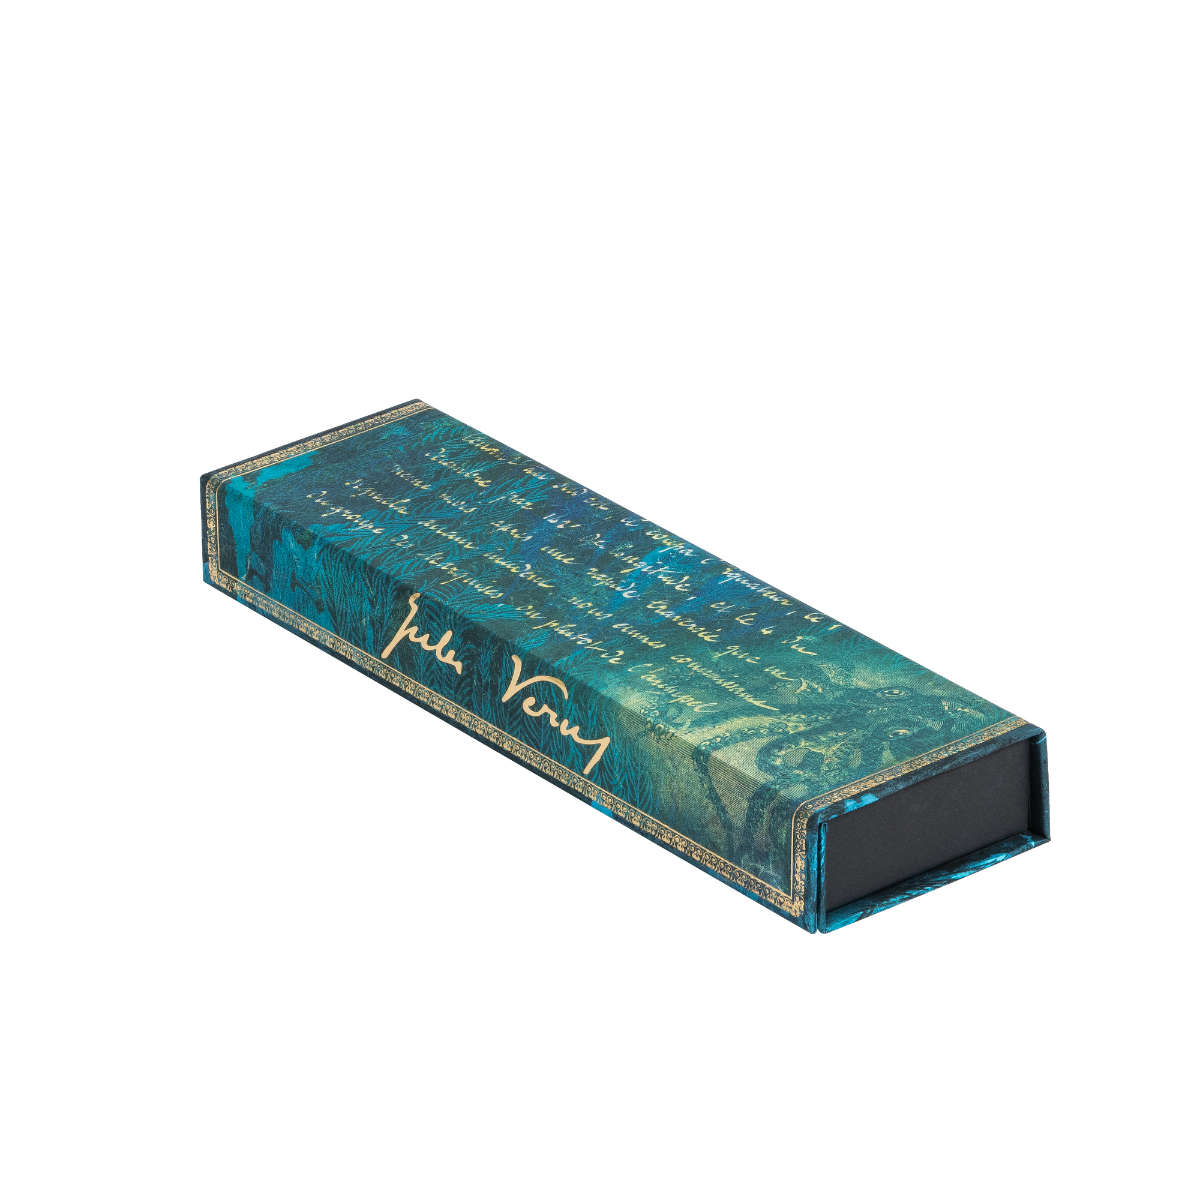 Paperblanks Verne 20,000 Leagues Pencil case 8.75 x 2.5 x 1.25